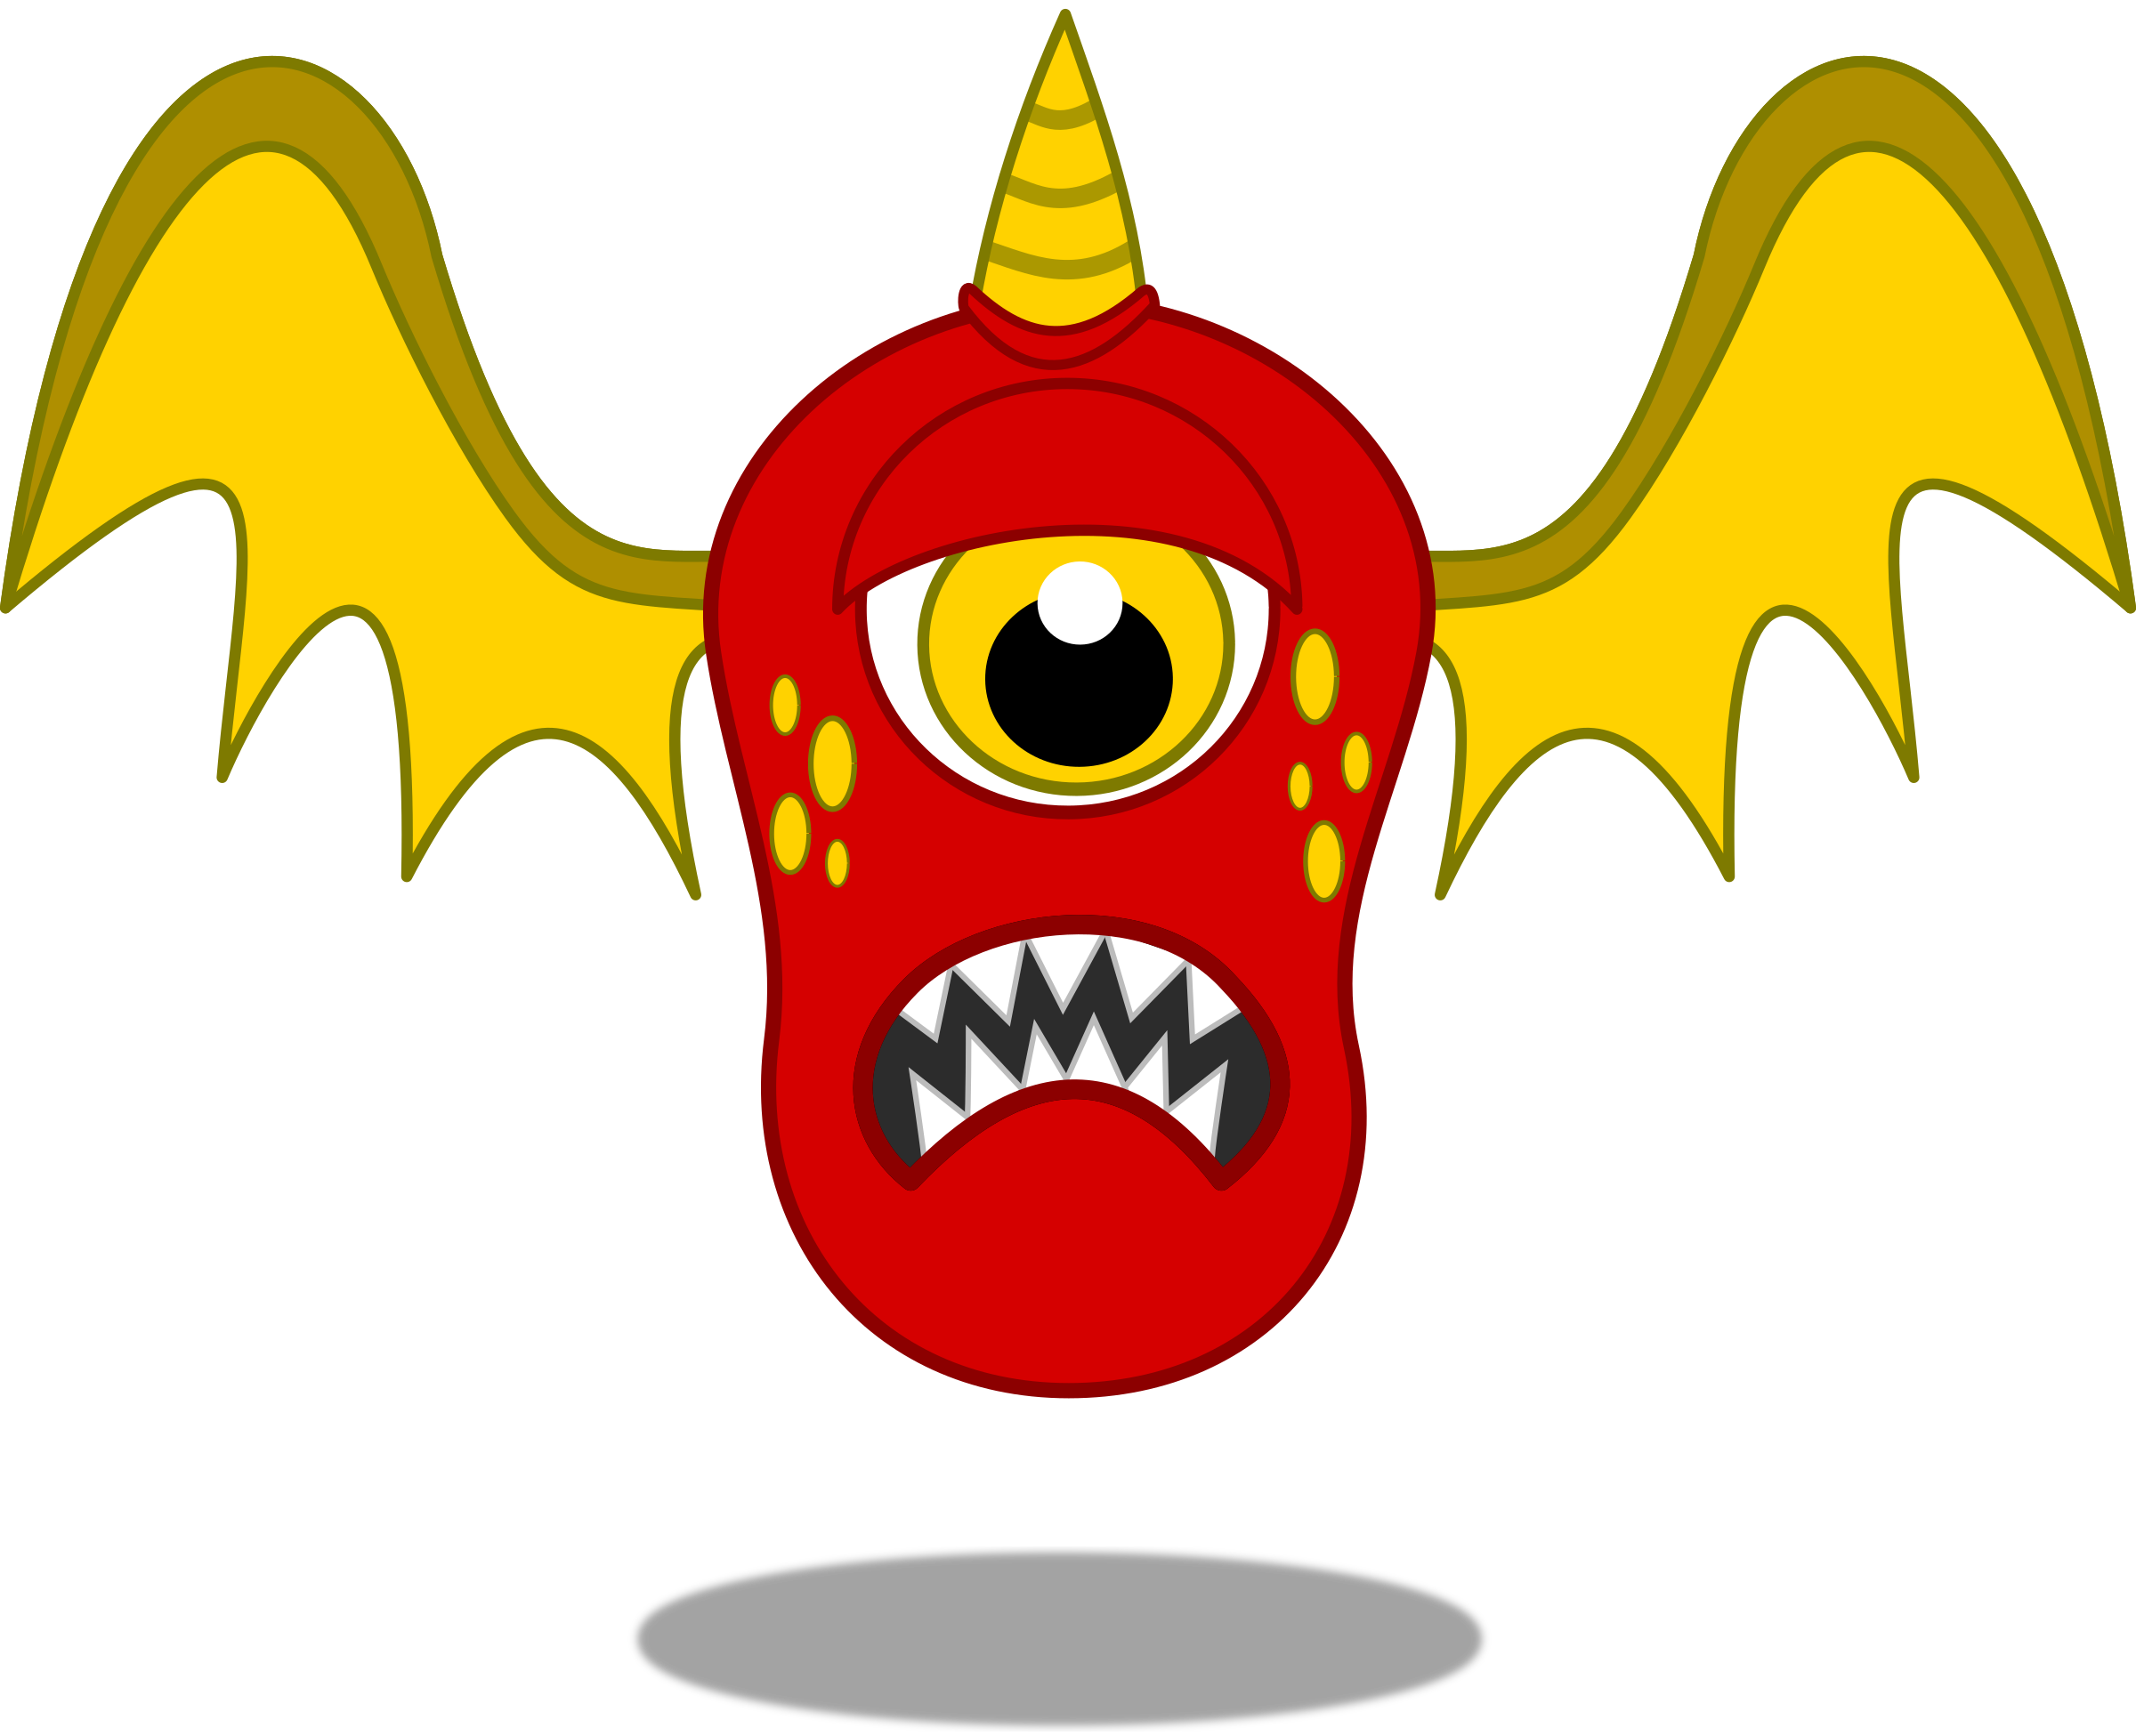 Monster clipart mouth open clipart. Red flying big image